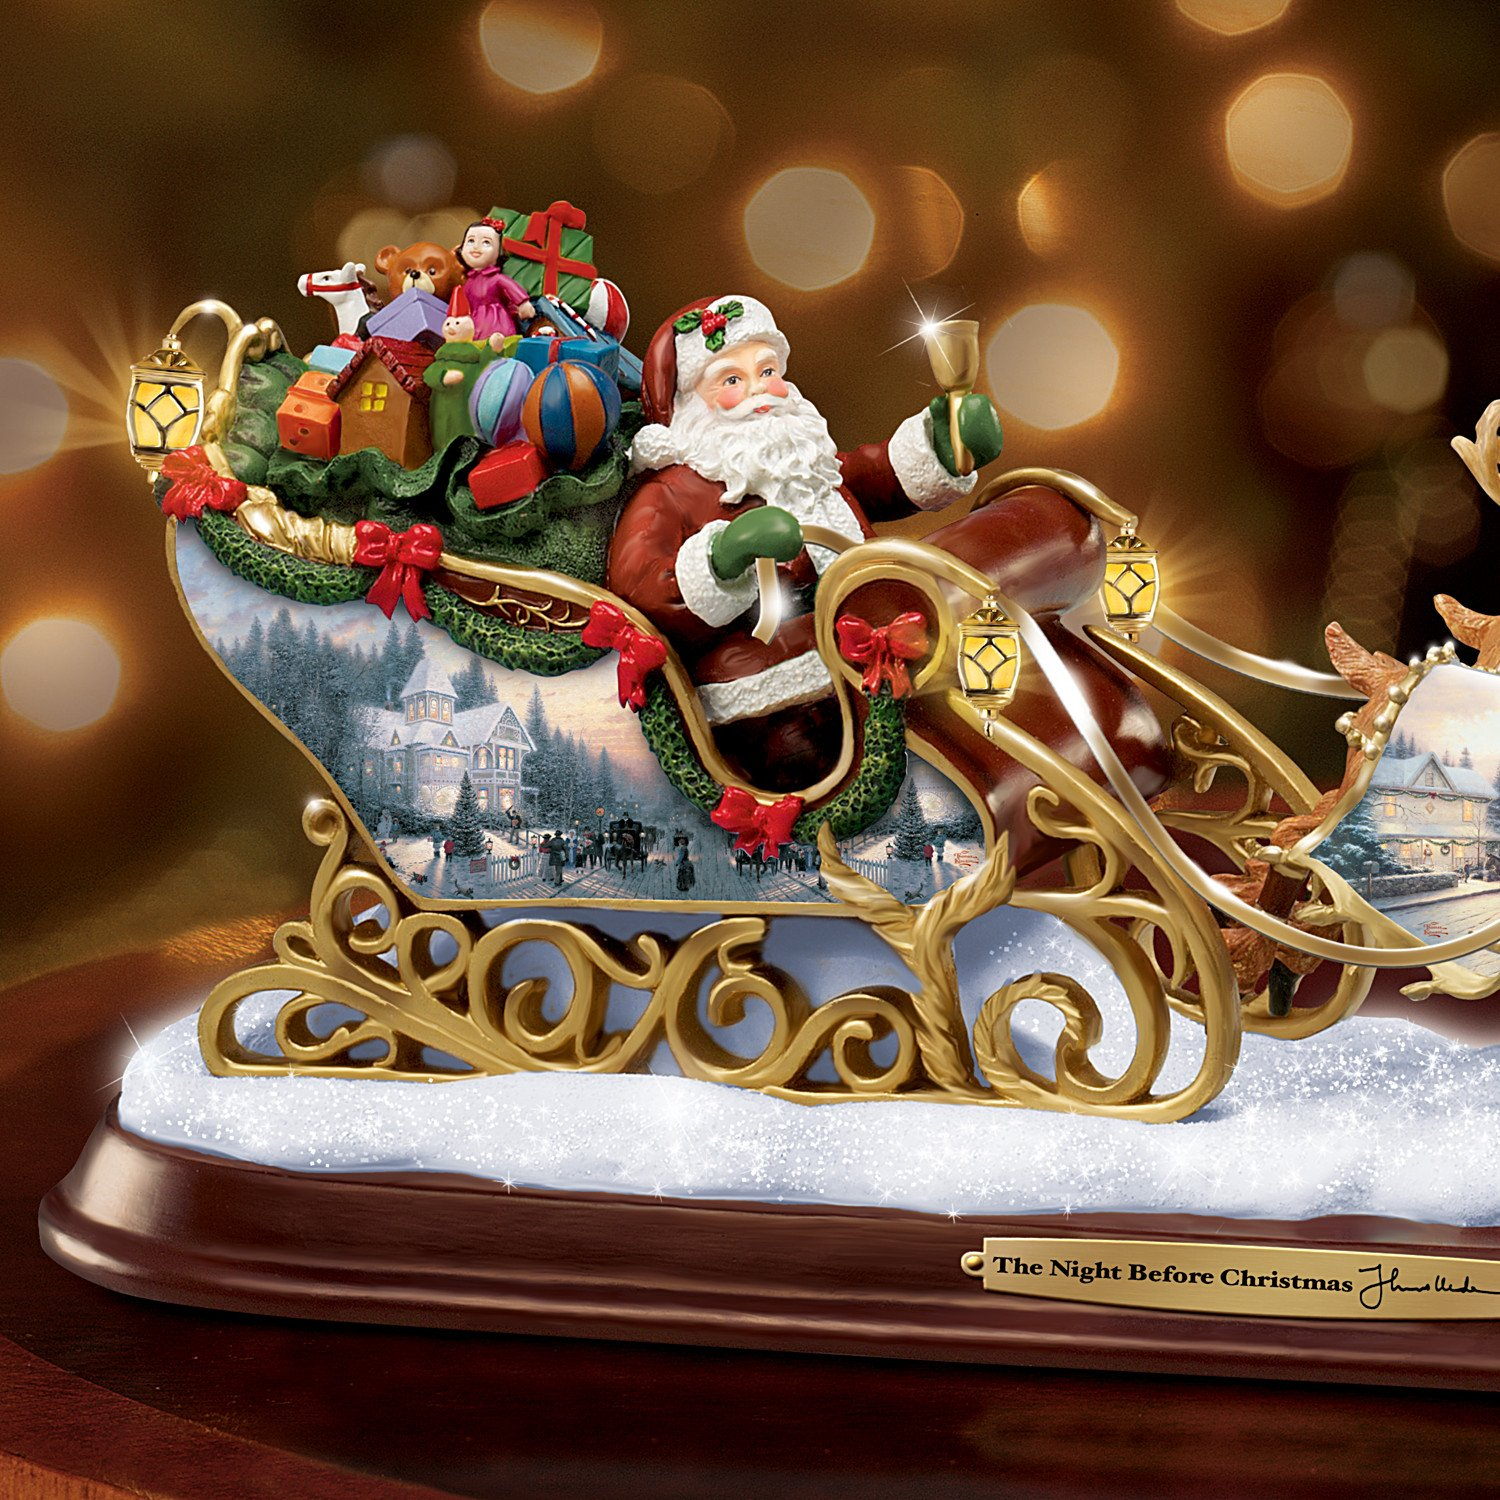 amazoncom thomas kinkade santas sleigh illuminated figurine the night before christmas by the bradford exchange home kitchen - Night Before Christmas Decorations